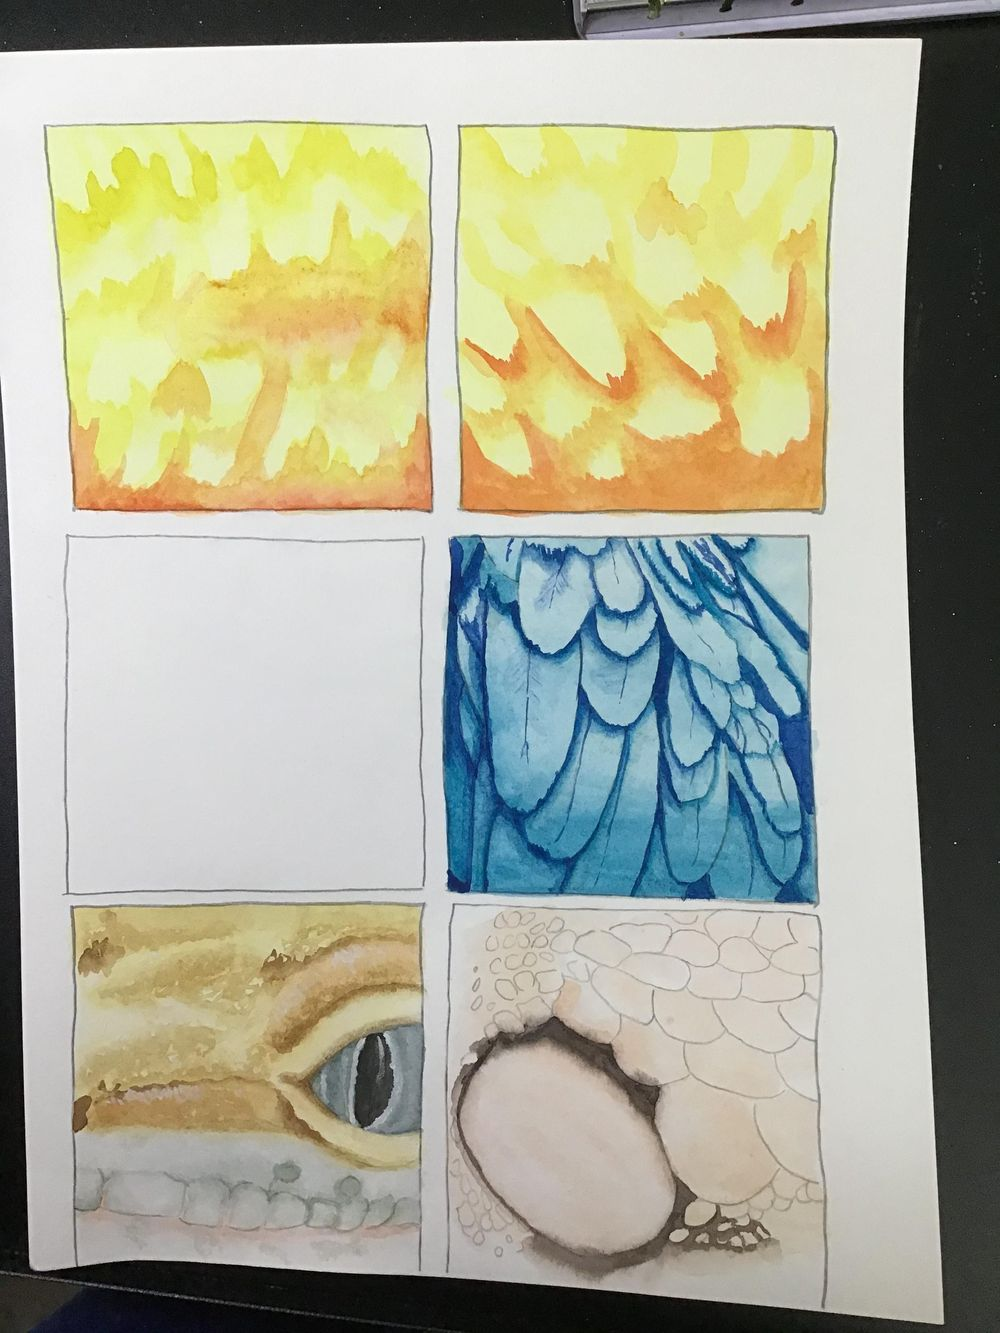 Animal Textures - image 2 - student project